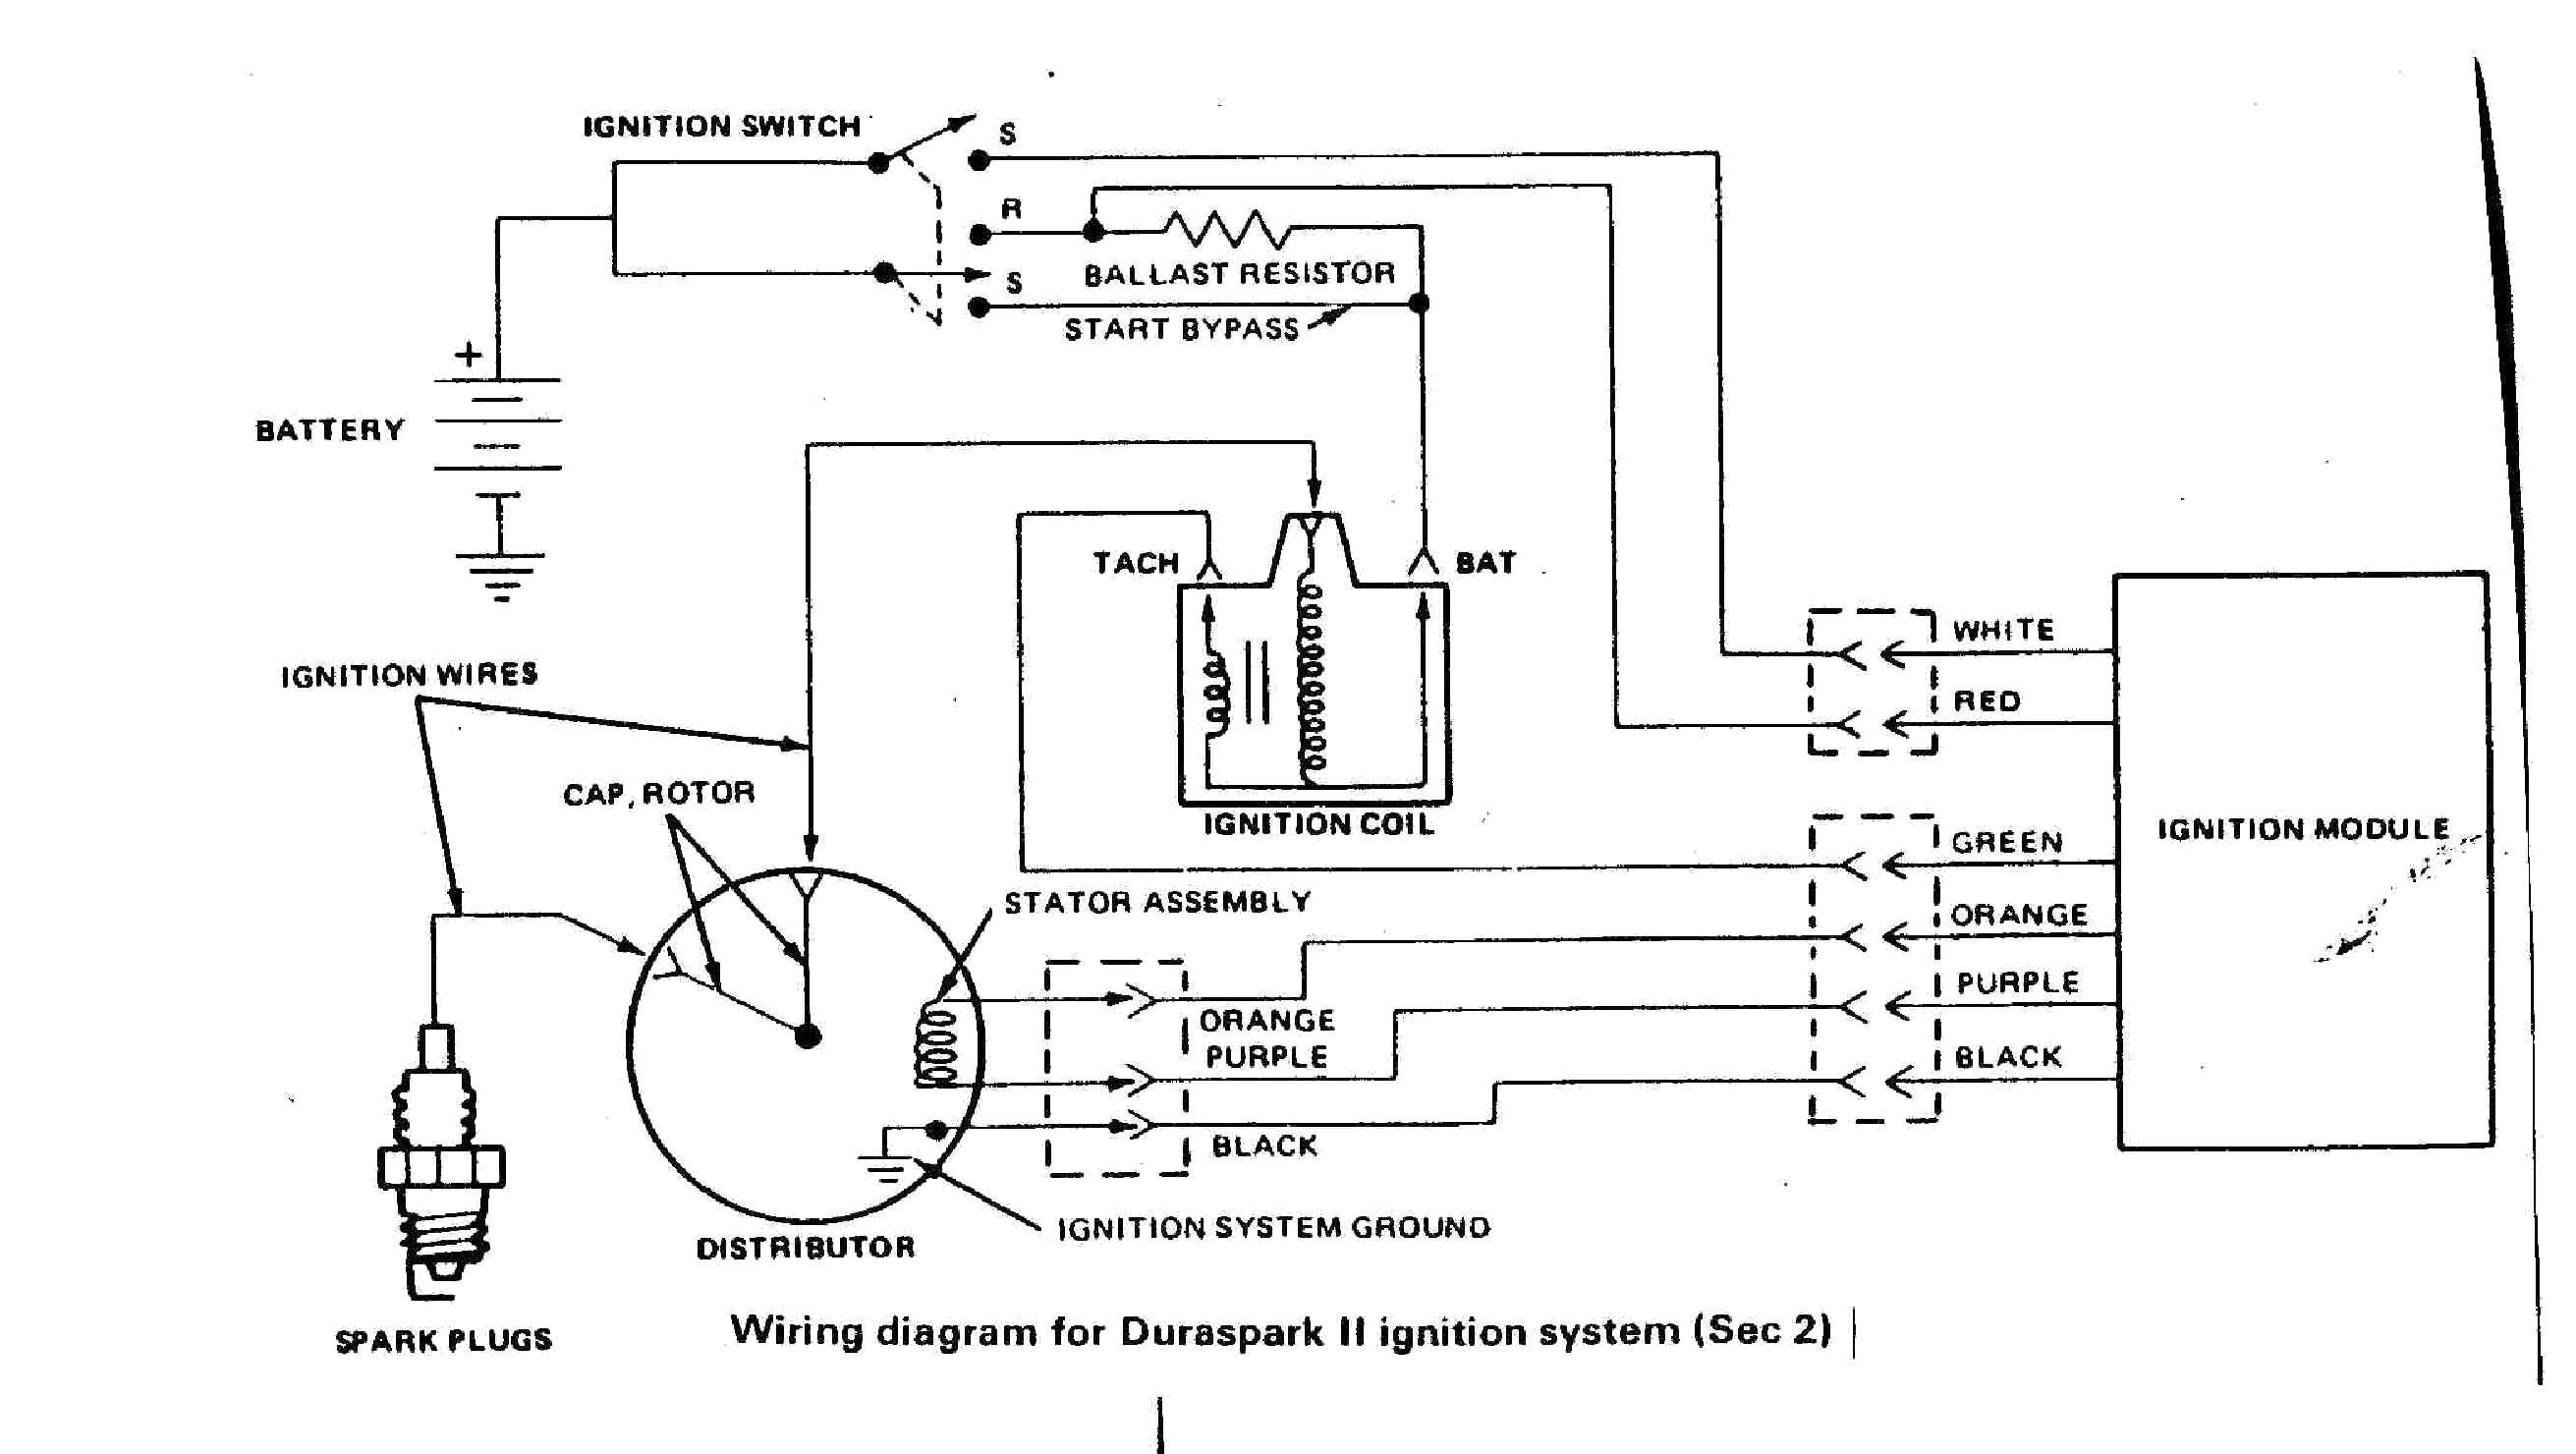 wiring diagram gilson s 12 wiring diagram megawiring diagram gilson s 12 wiring diagram inside wards [ 2622 x 1480 Pixel ]